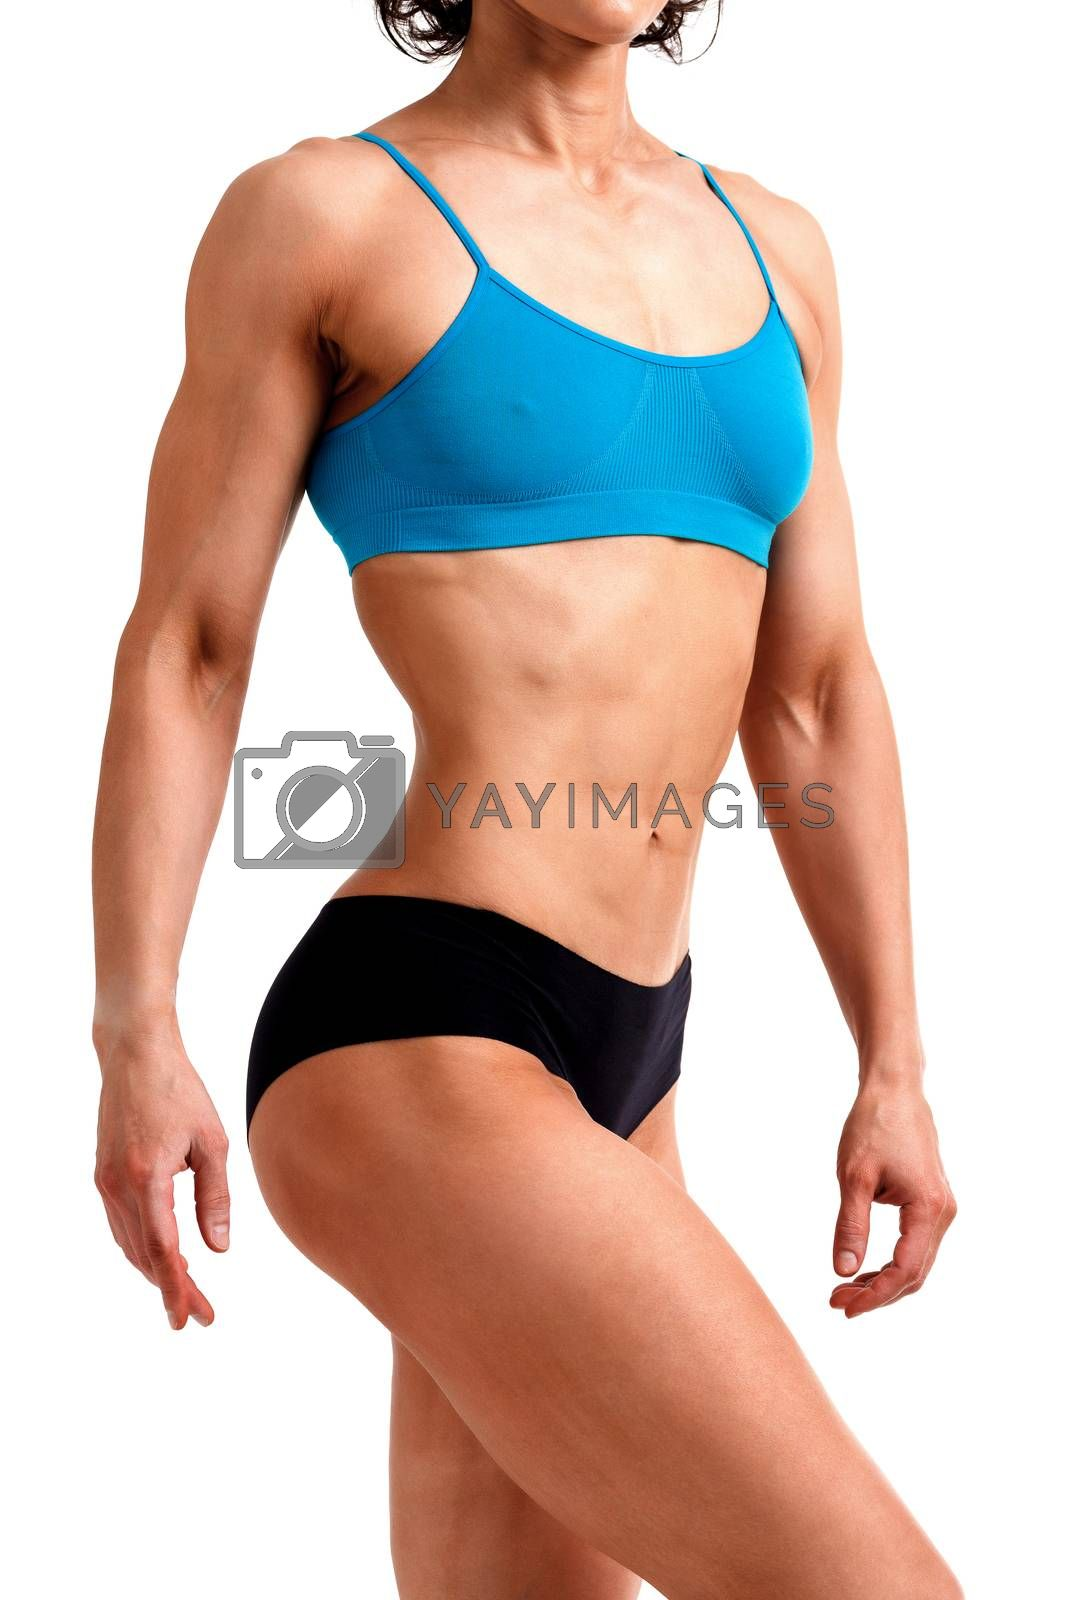 Fitness woman posing against a white background, isolated